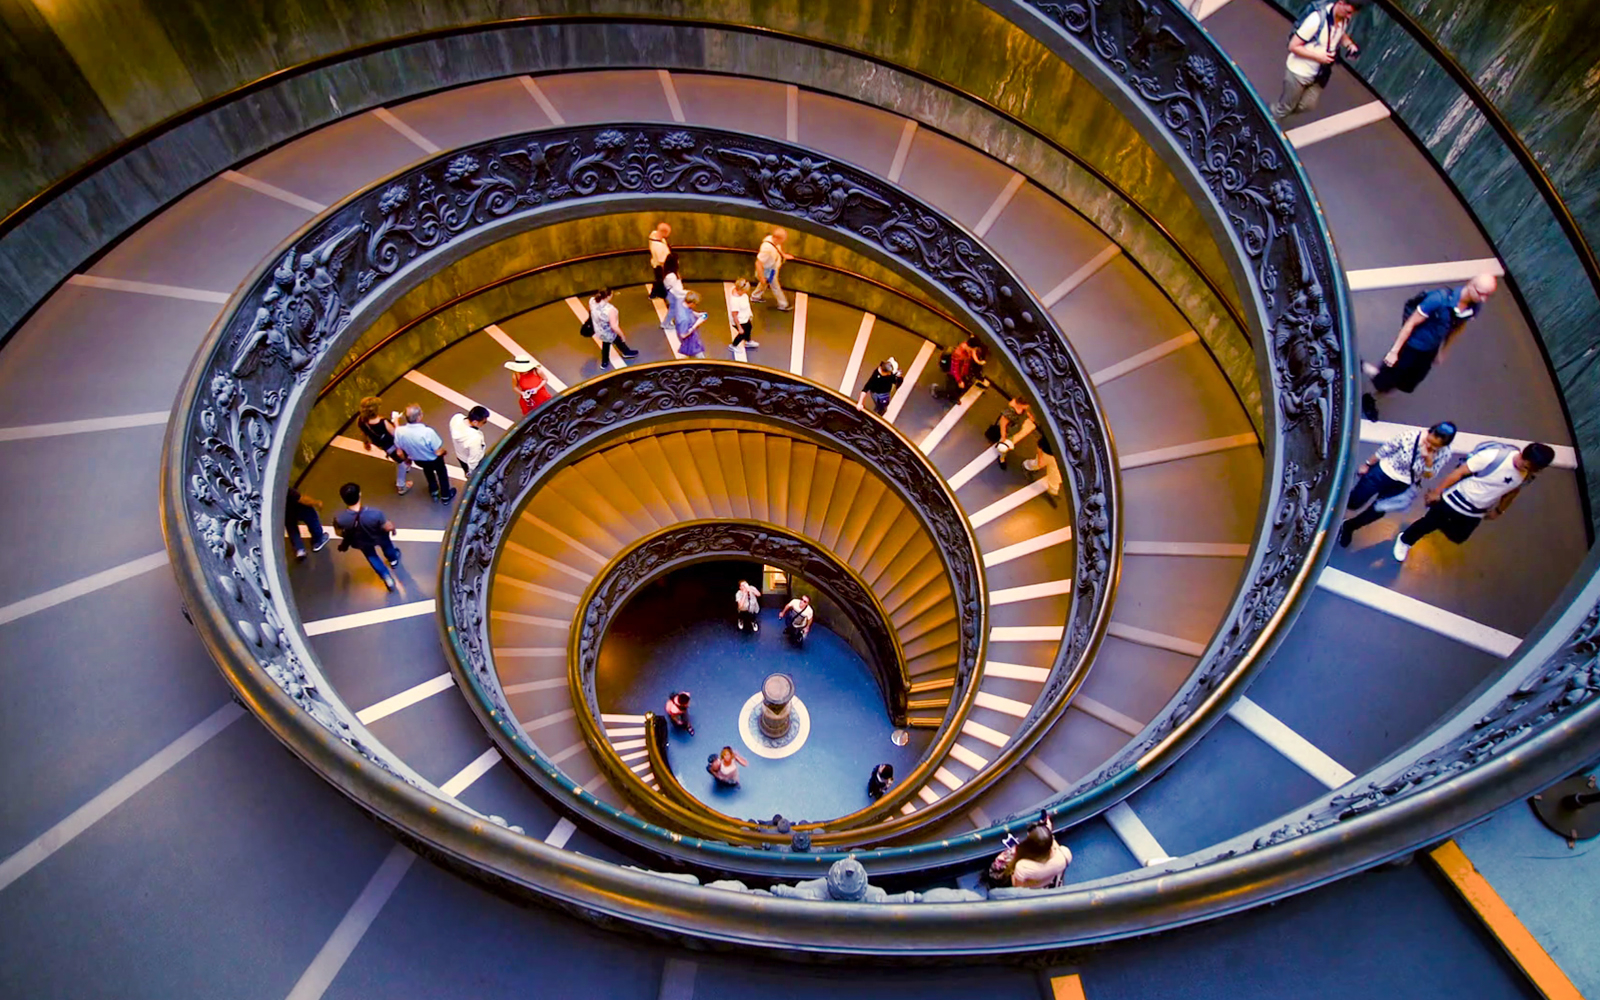 832b81aa 90ec 4ff6 8fb8 8e9d9d5ba991 9379 vatican guided tour of the vatican museums